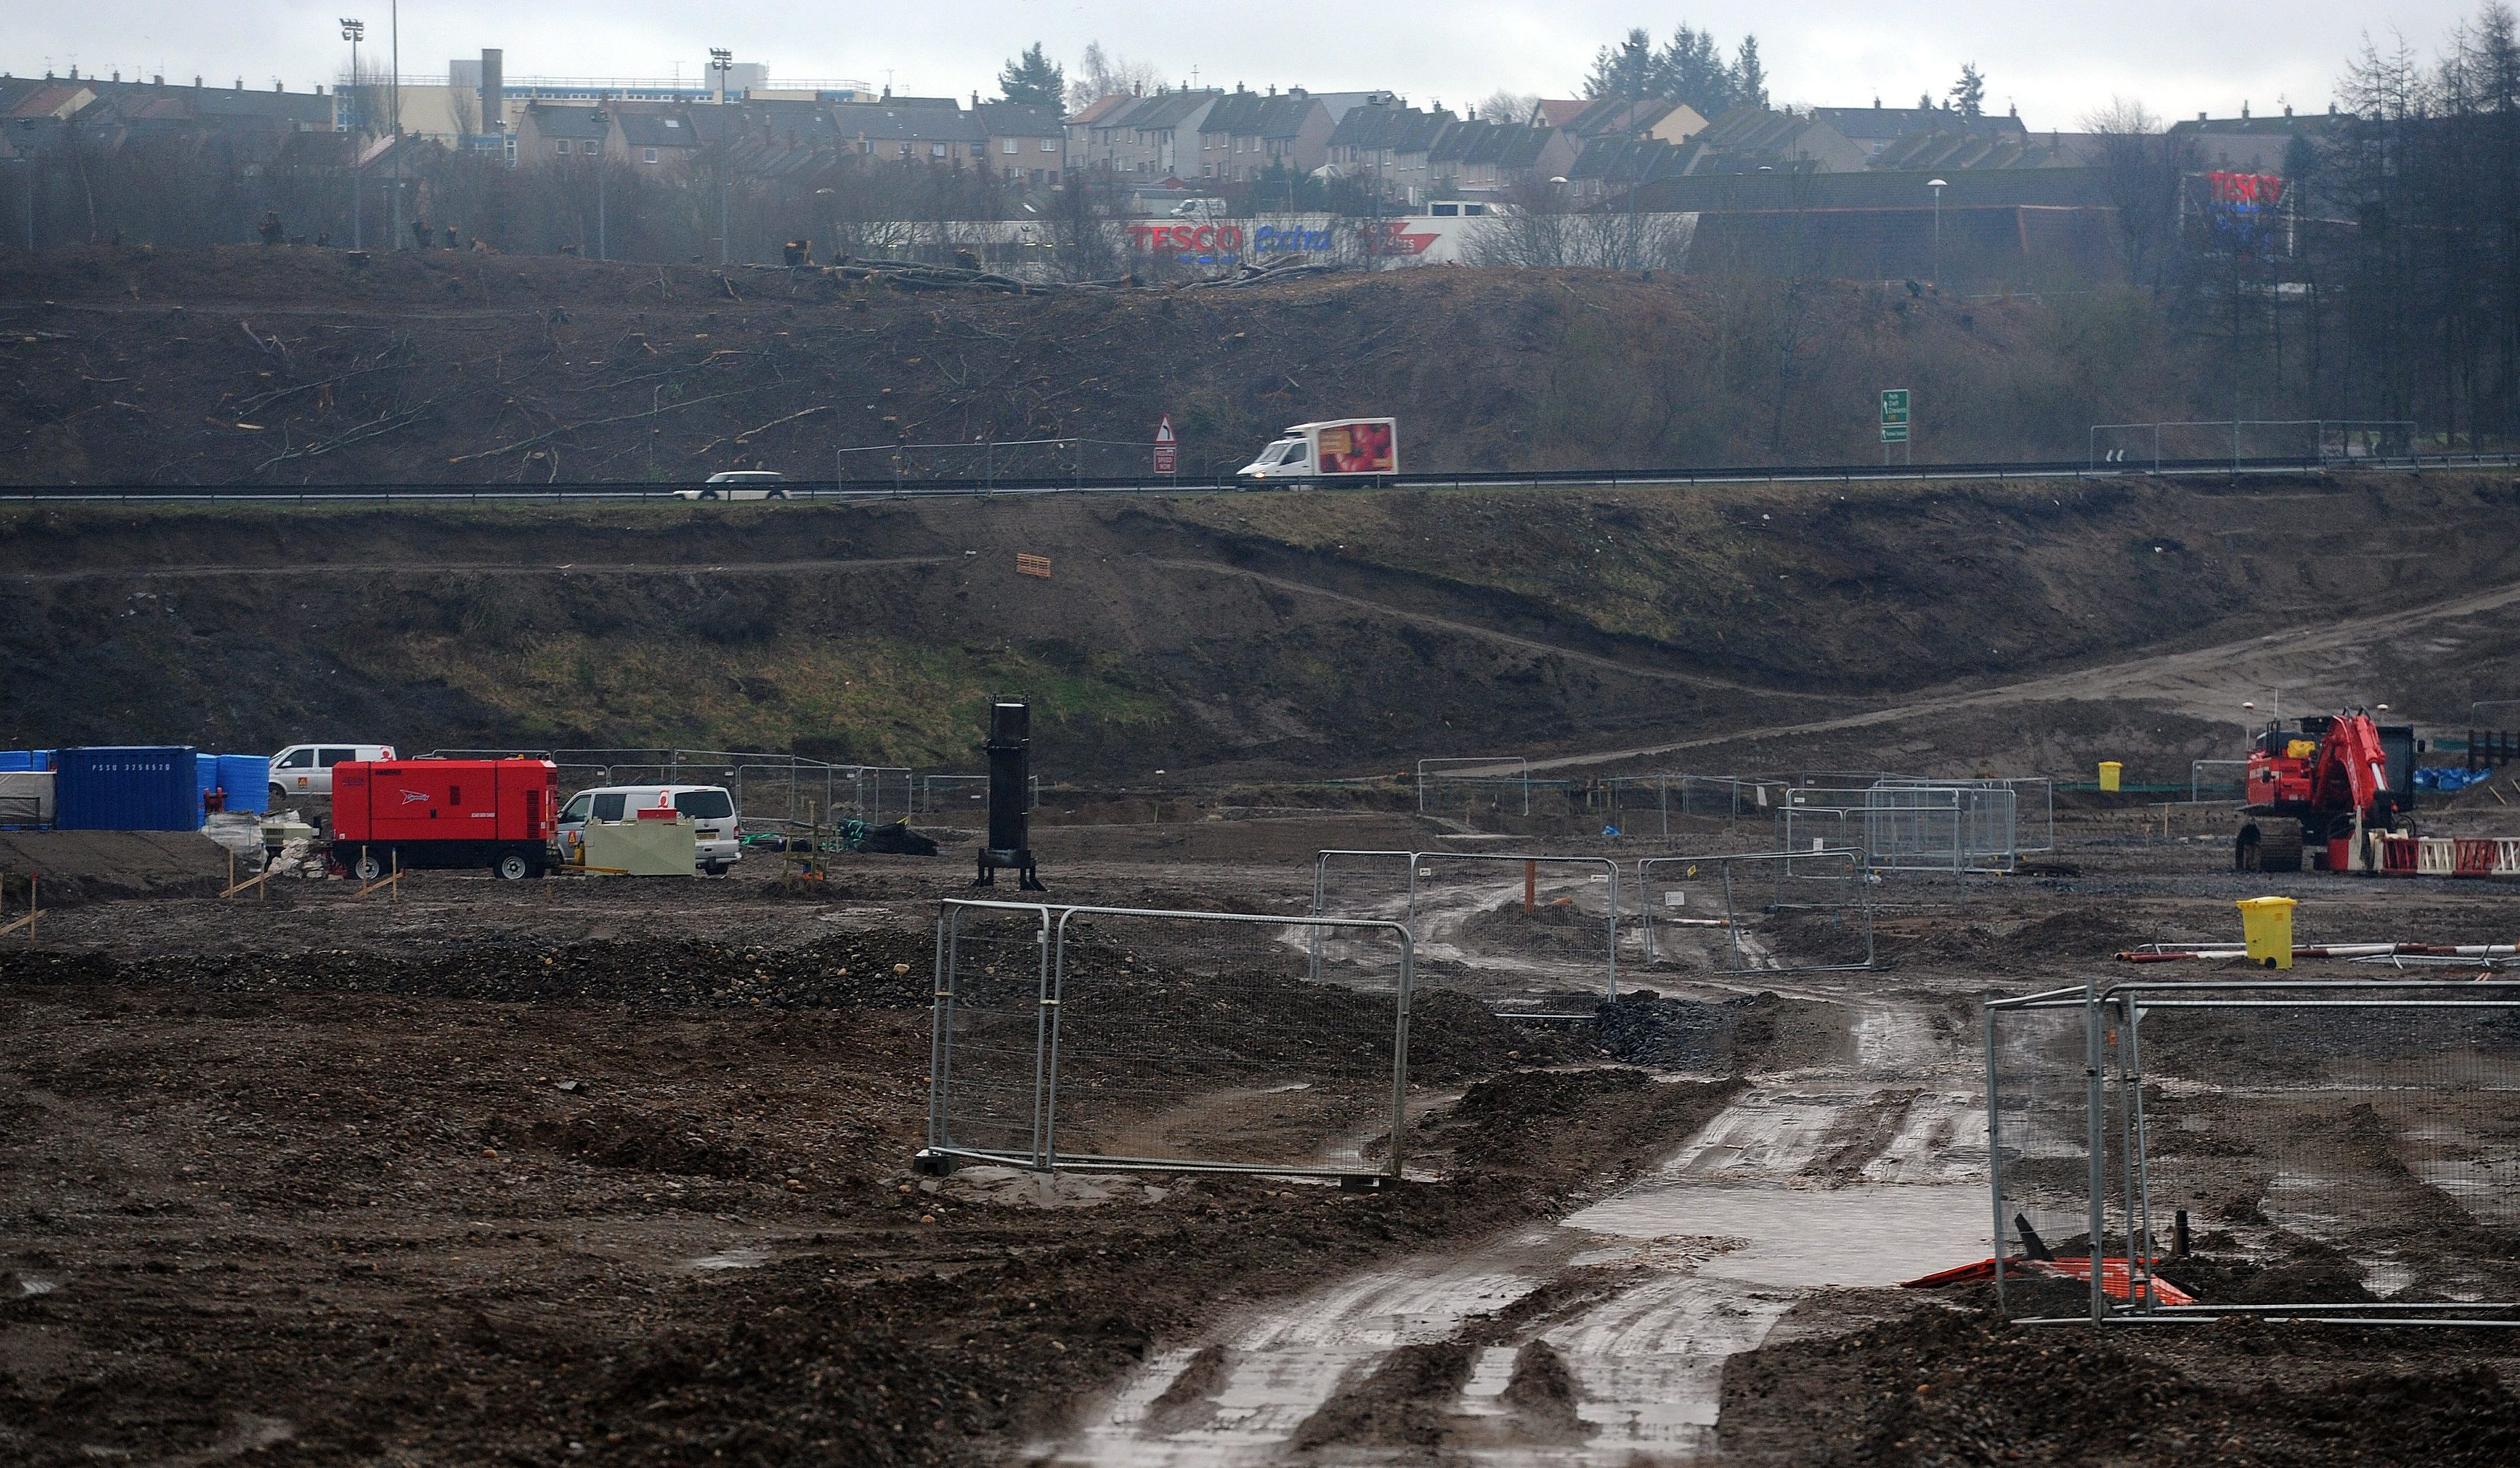 Work taking place near the A9.